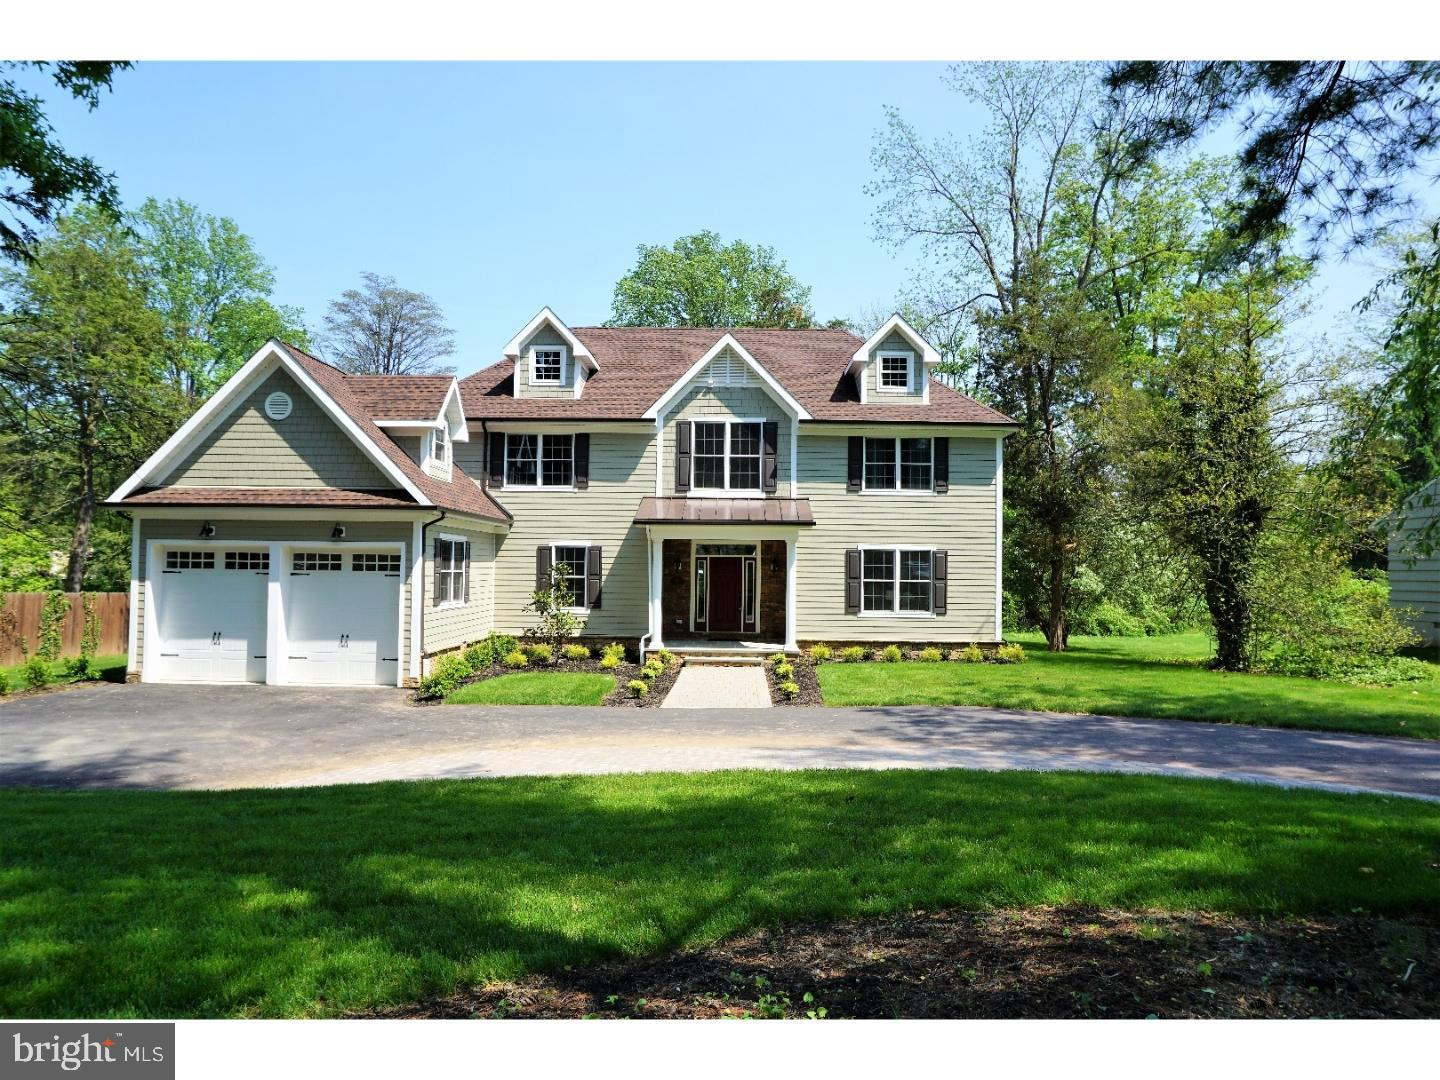 Single Family Home for Sale at 199 SNOWDEN Princeton, New Jersey 08540 United StatesMunicipality: Princeton